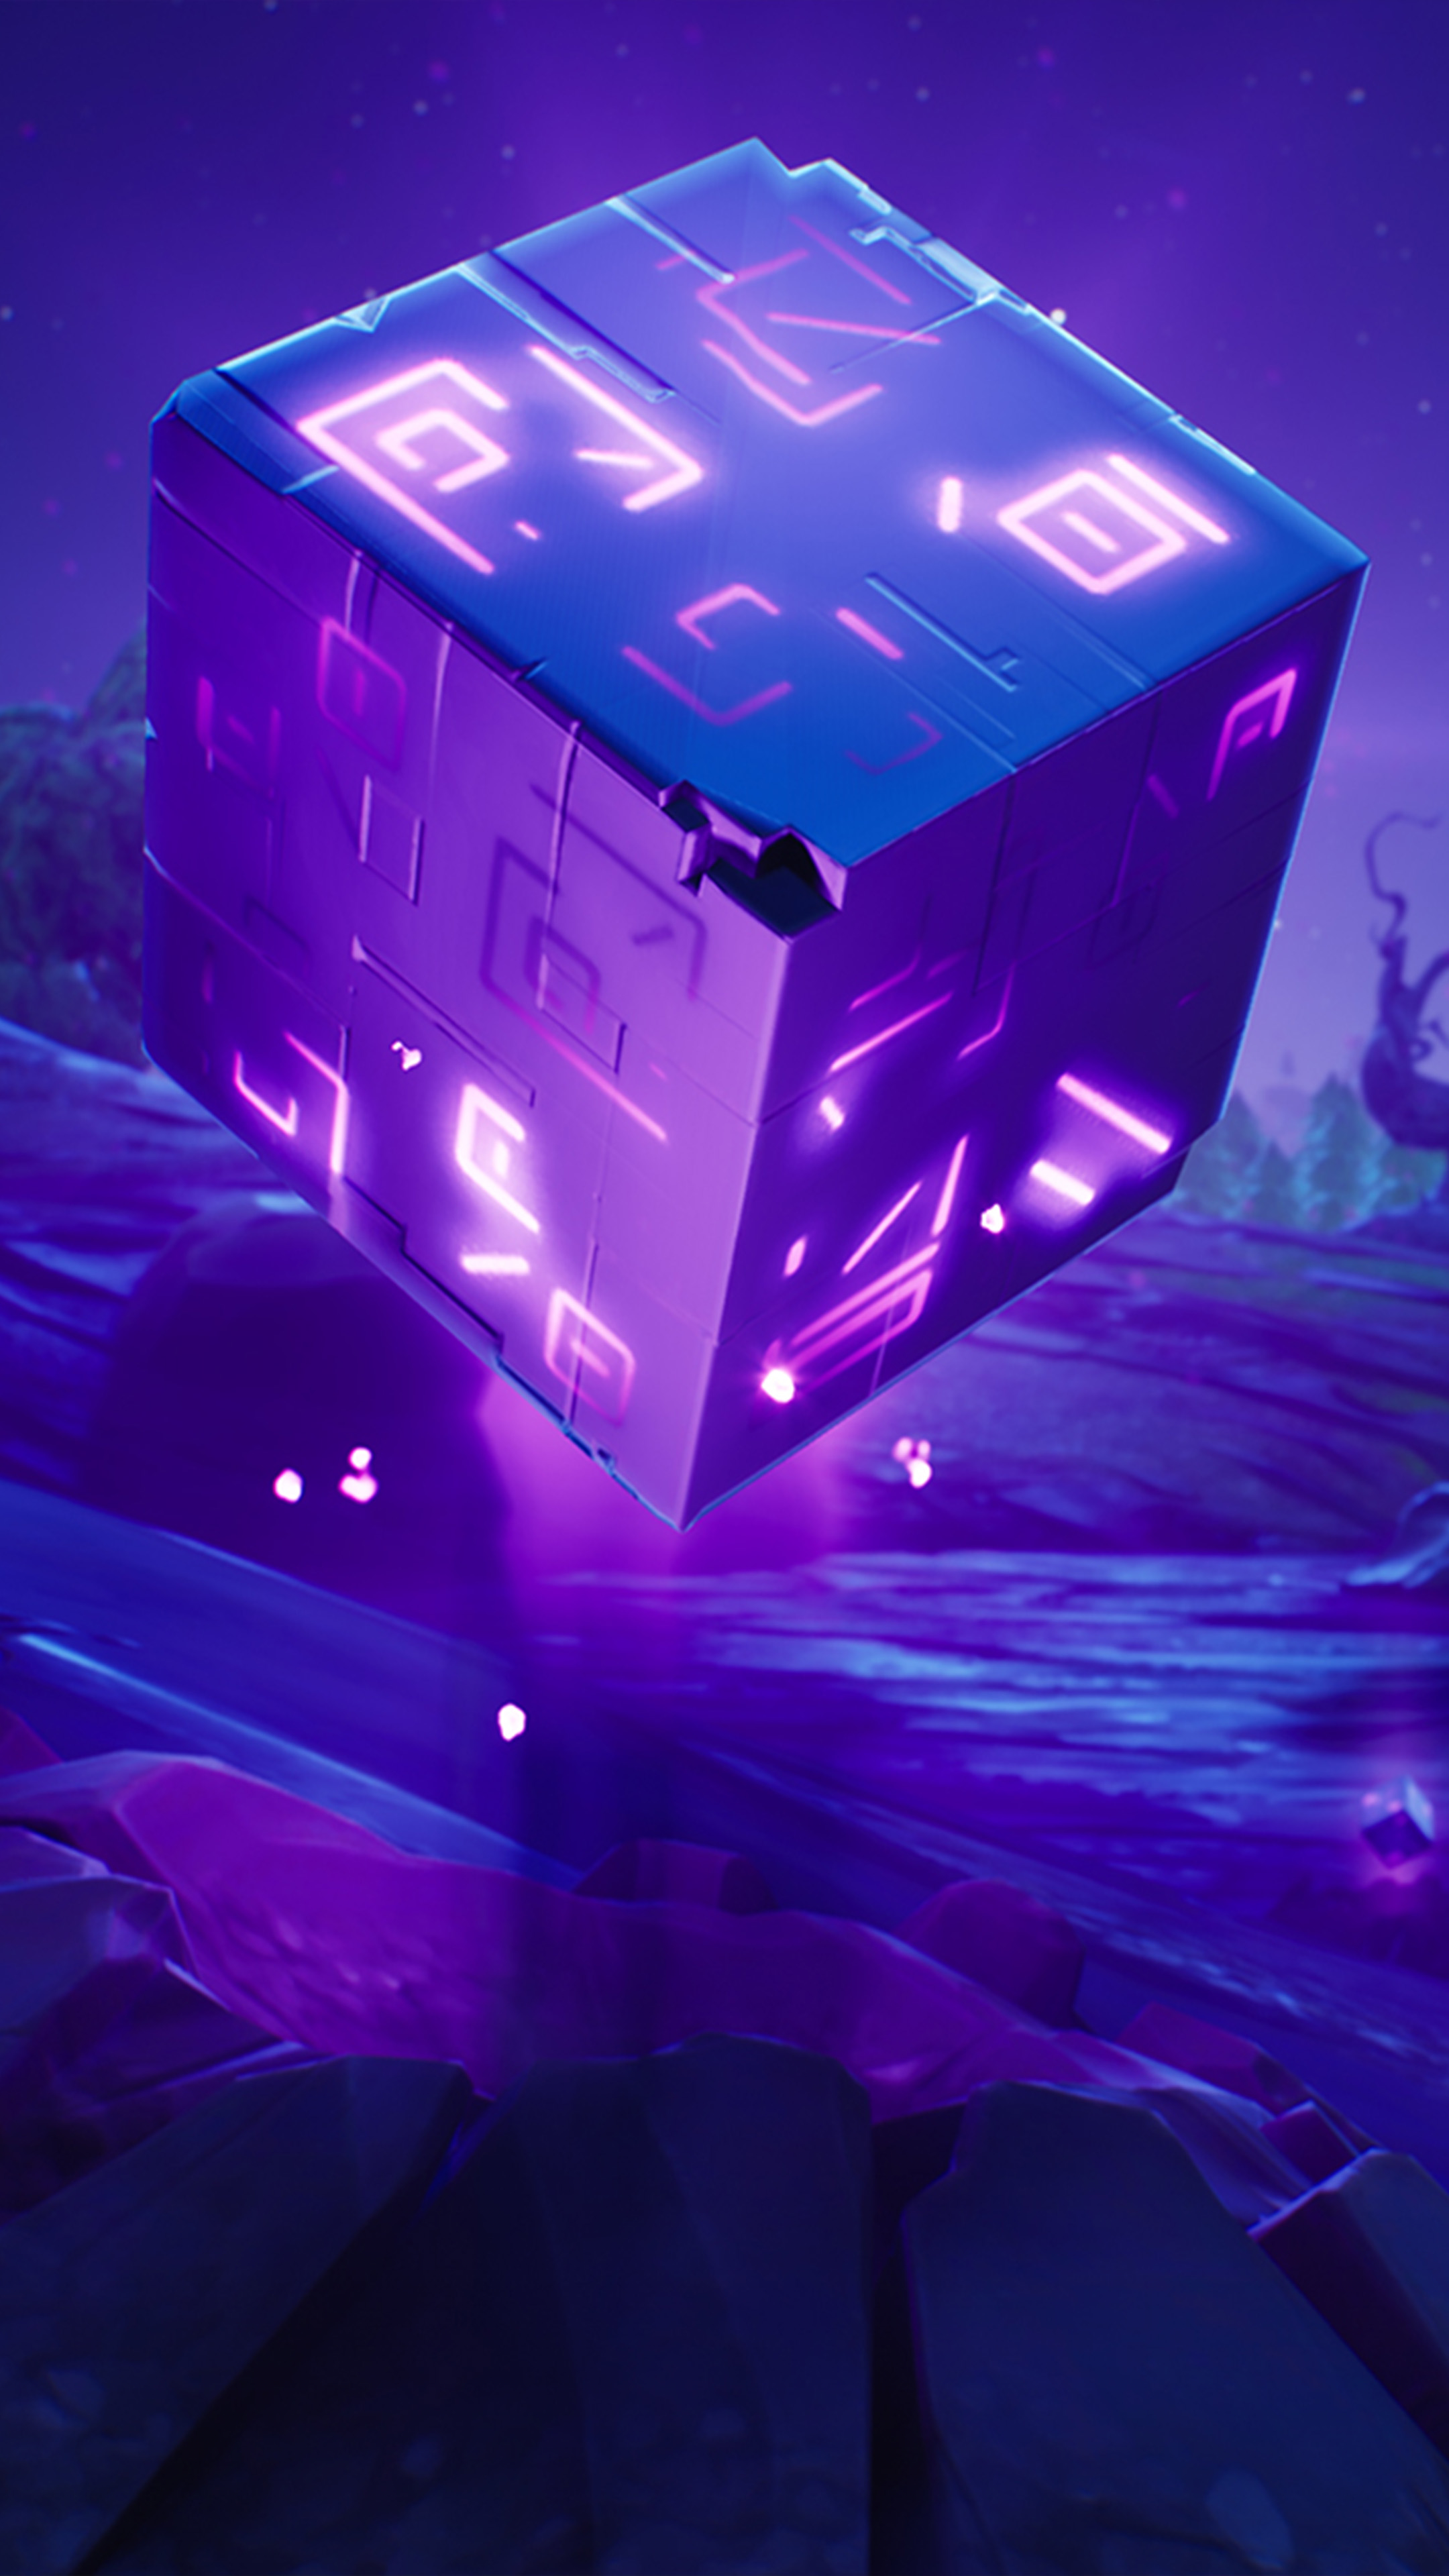 Fortnite Shadow Stone 4k Ultra Hd Mobile Wallpaper